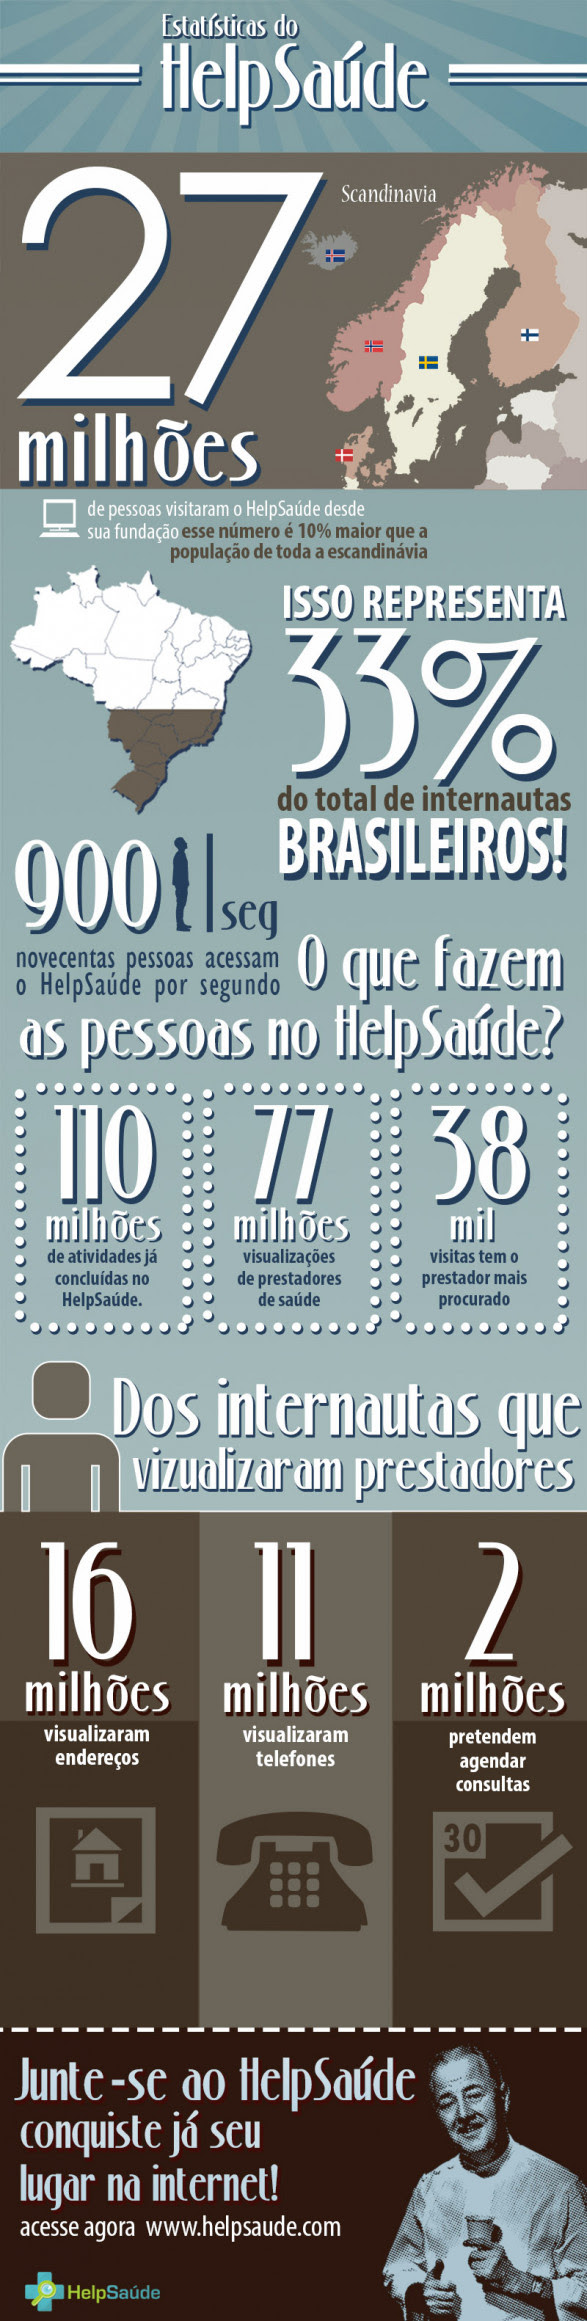 Estatisticas do HelpSaude